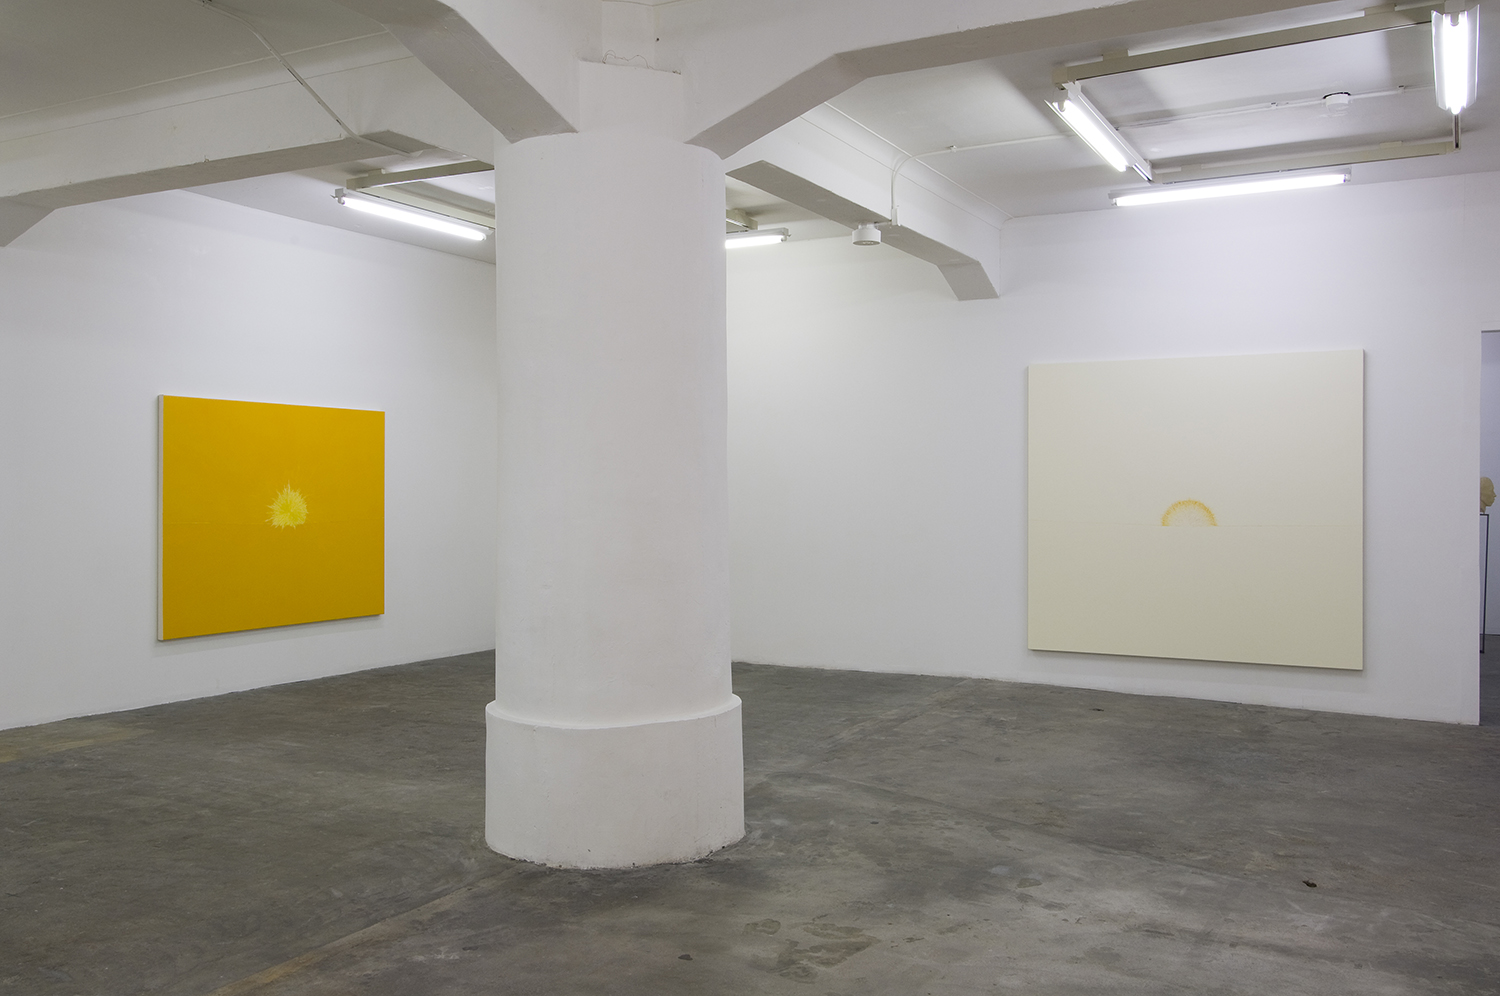 left: The rising sun 2008-11(03)|oil on canvas|140 x 180 cm|2008<br>right: The rising sun 2008-11(02)|oil on canvas|190 x 200 cm|2008